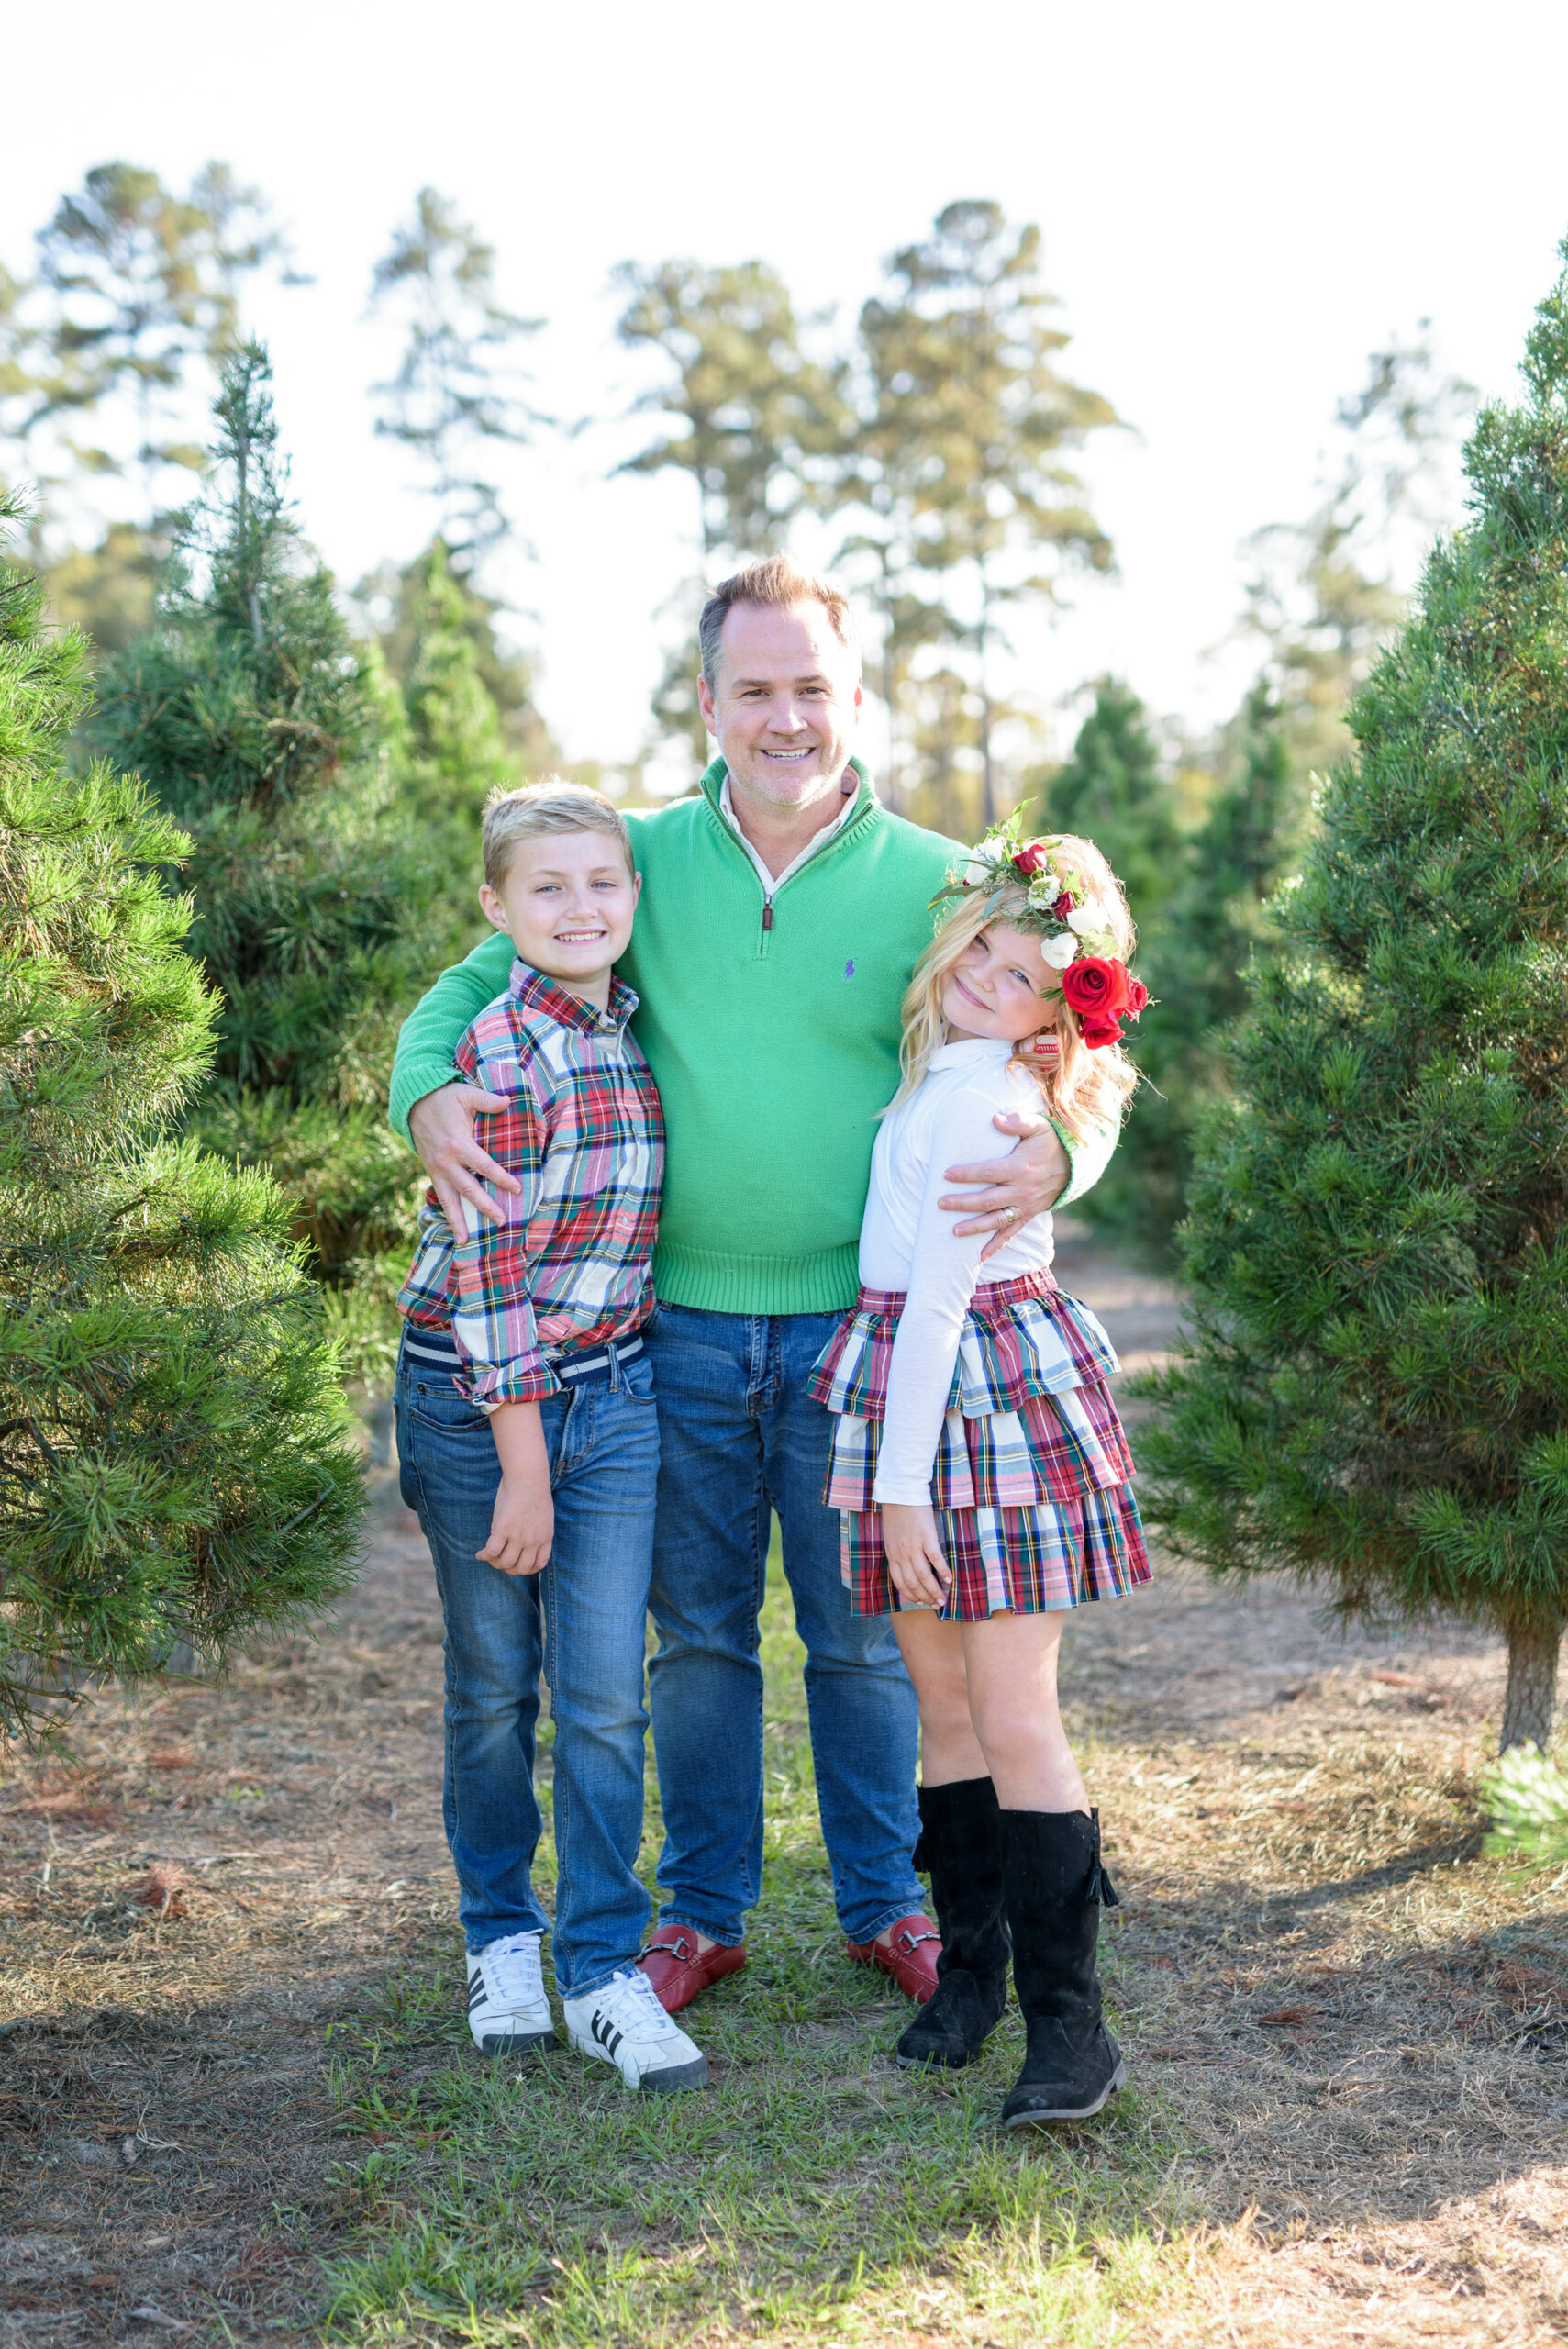 Christmas Tree Farm Photos by popular Houston lifestyle blog, Fancy Ashley: image of a dad and his two children standing together in a row of pine trees and wearing a green pullover sweater, red loafers, black suede boots, plaid button up shirt, jeans, white long sleeve turtleneck shirt, plaid ruffle tier skirt, floral crown and black suede boots.